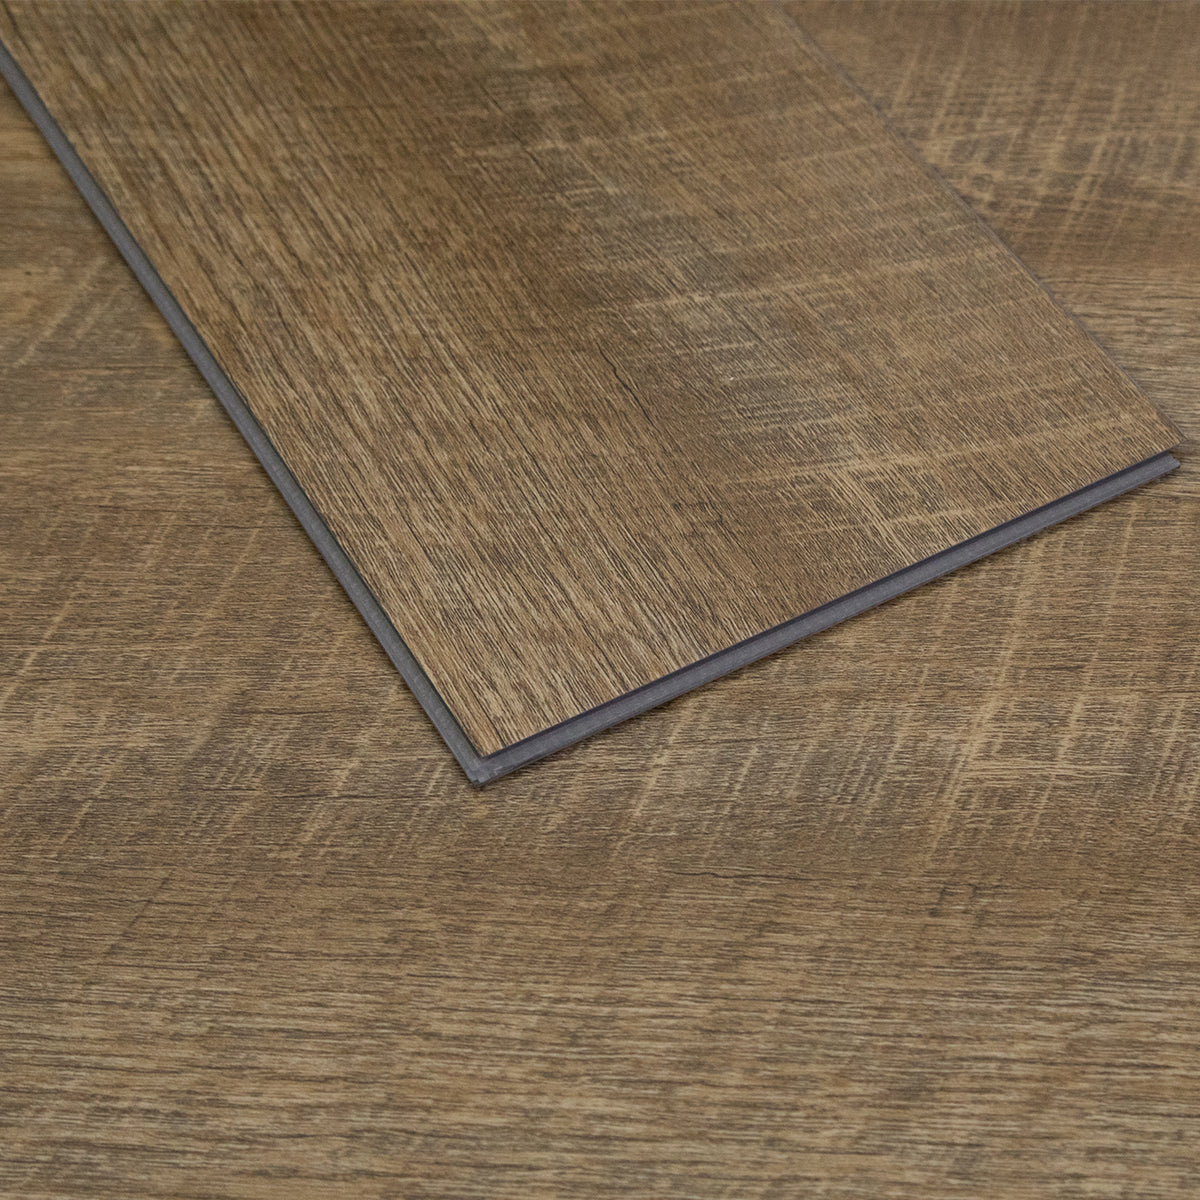 23.6 sq.ft Light Oak Rigid Core Wood Grain Finish Luxury Vinyl Plank Flooring - Foam Back